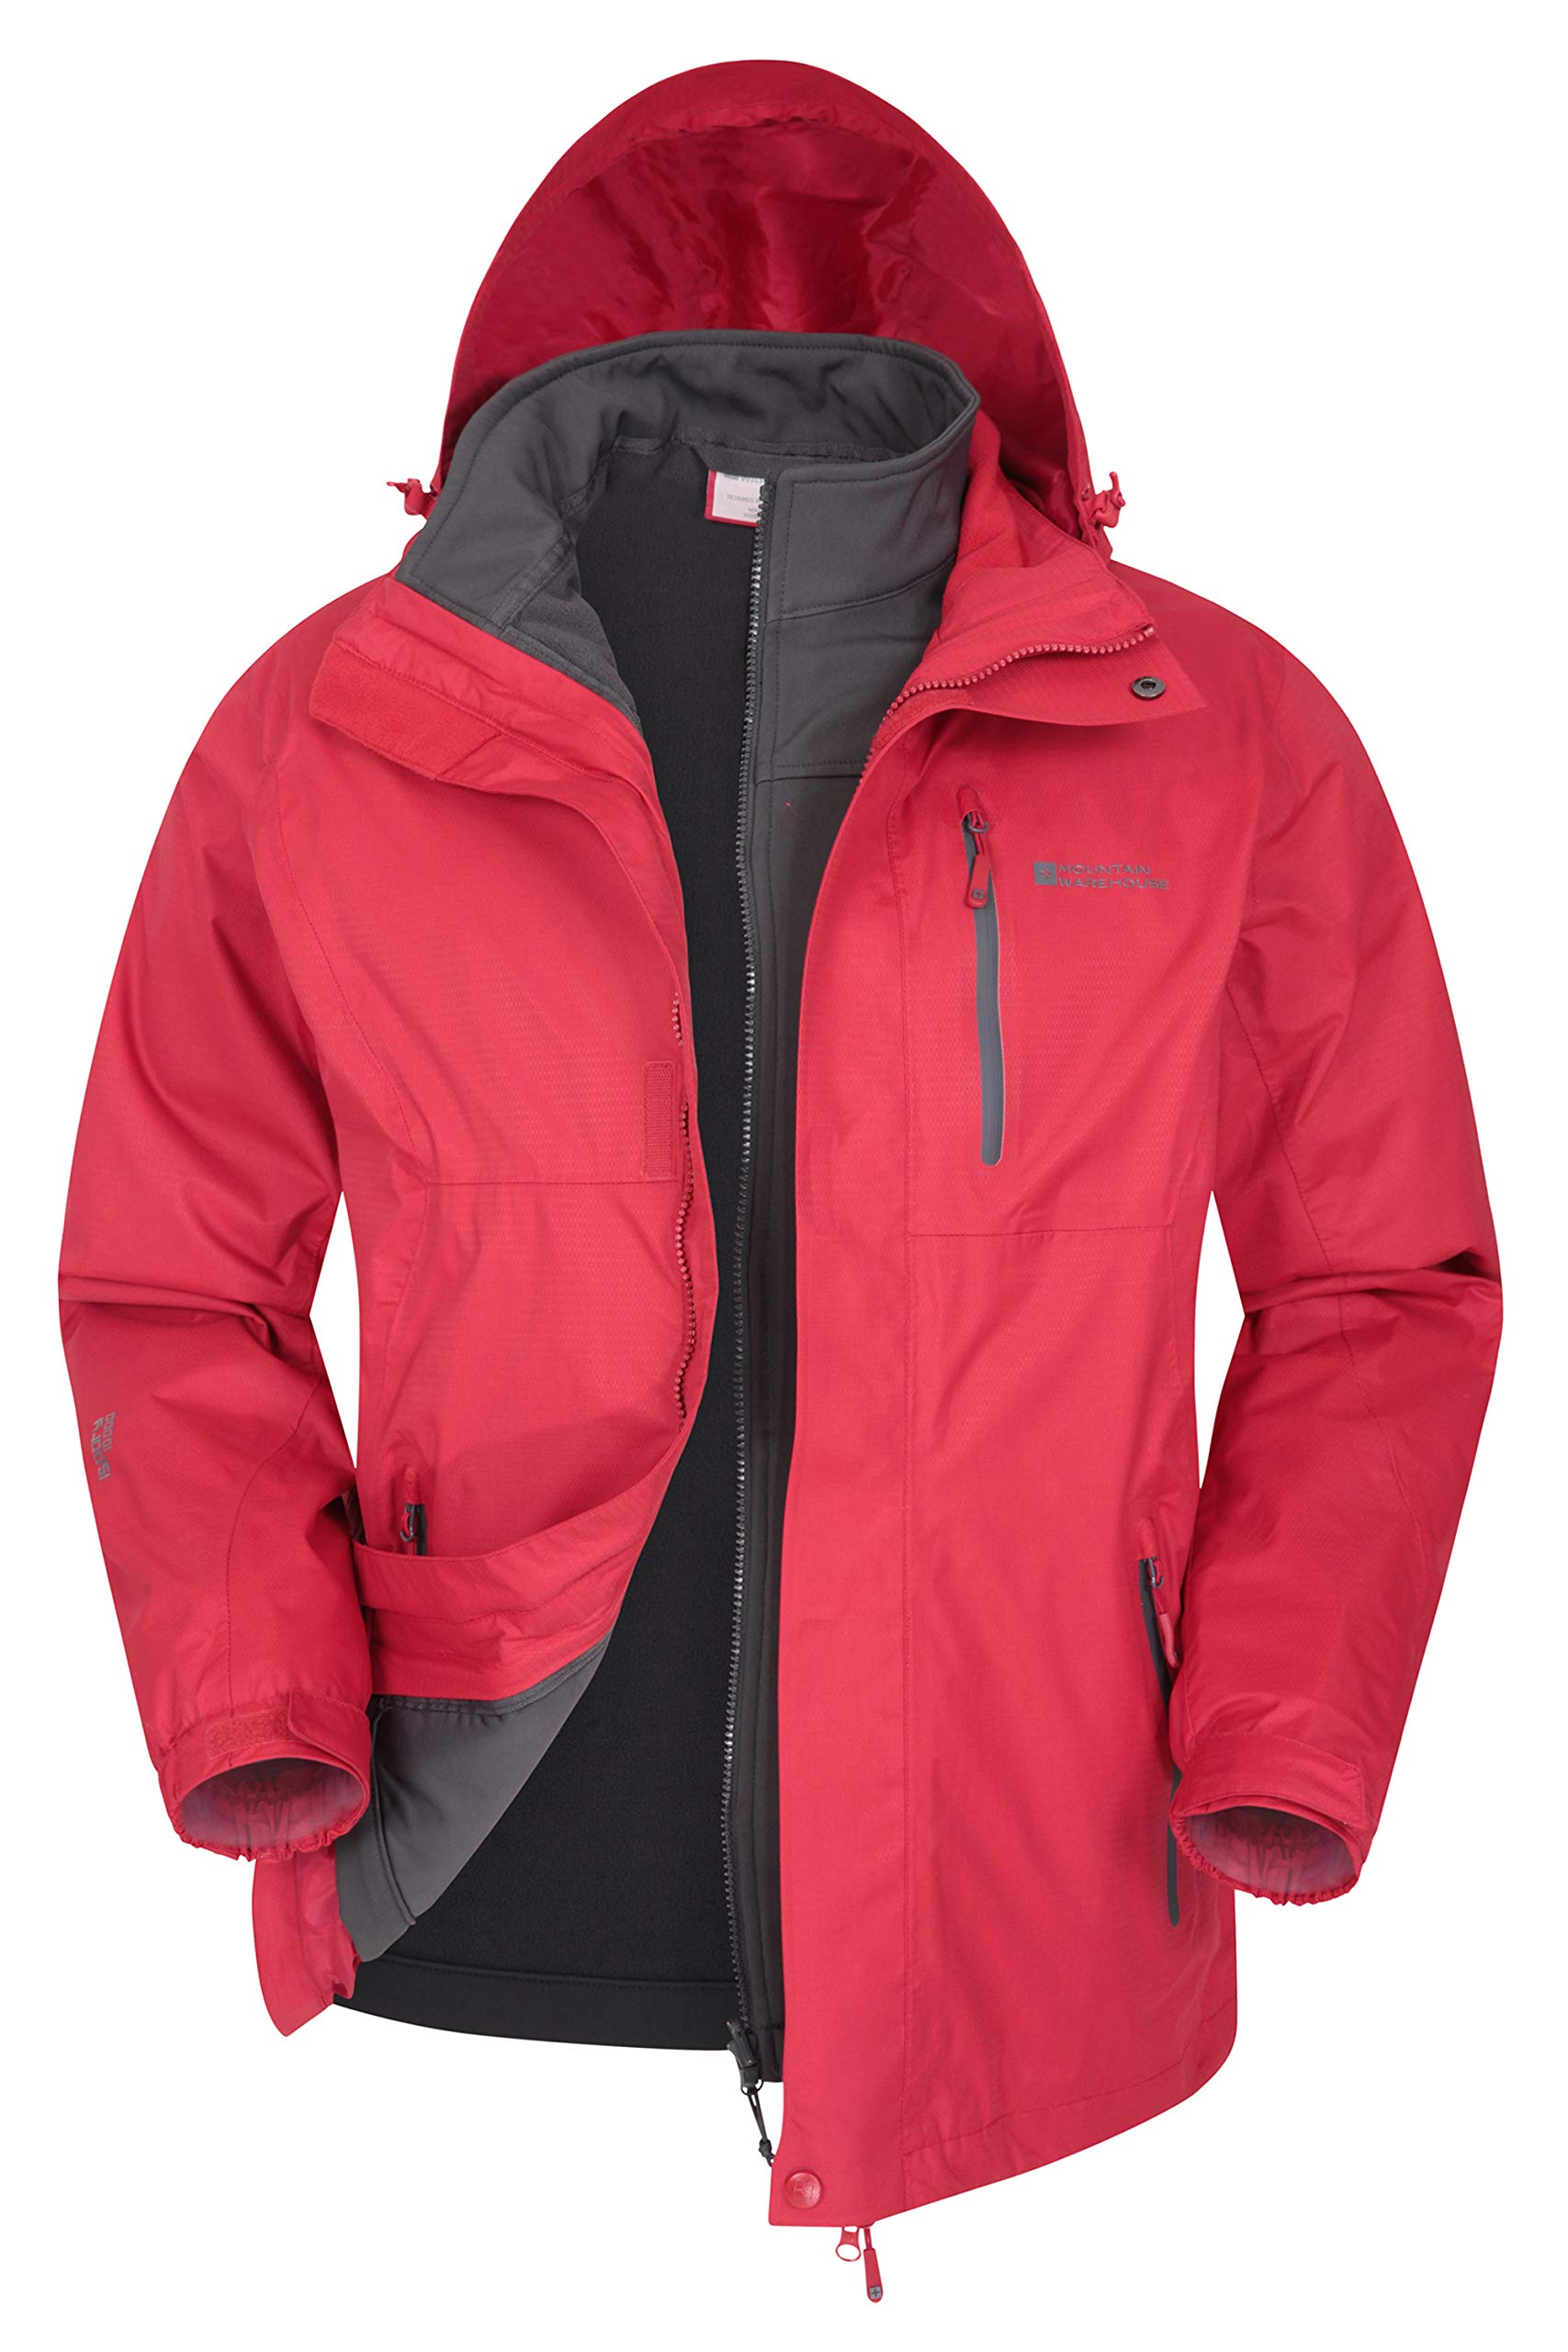 Mountain Warehouse Bracken Extreme Jacket